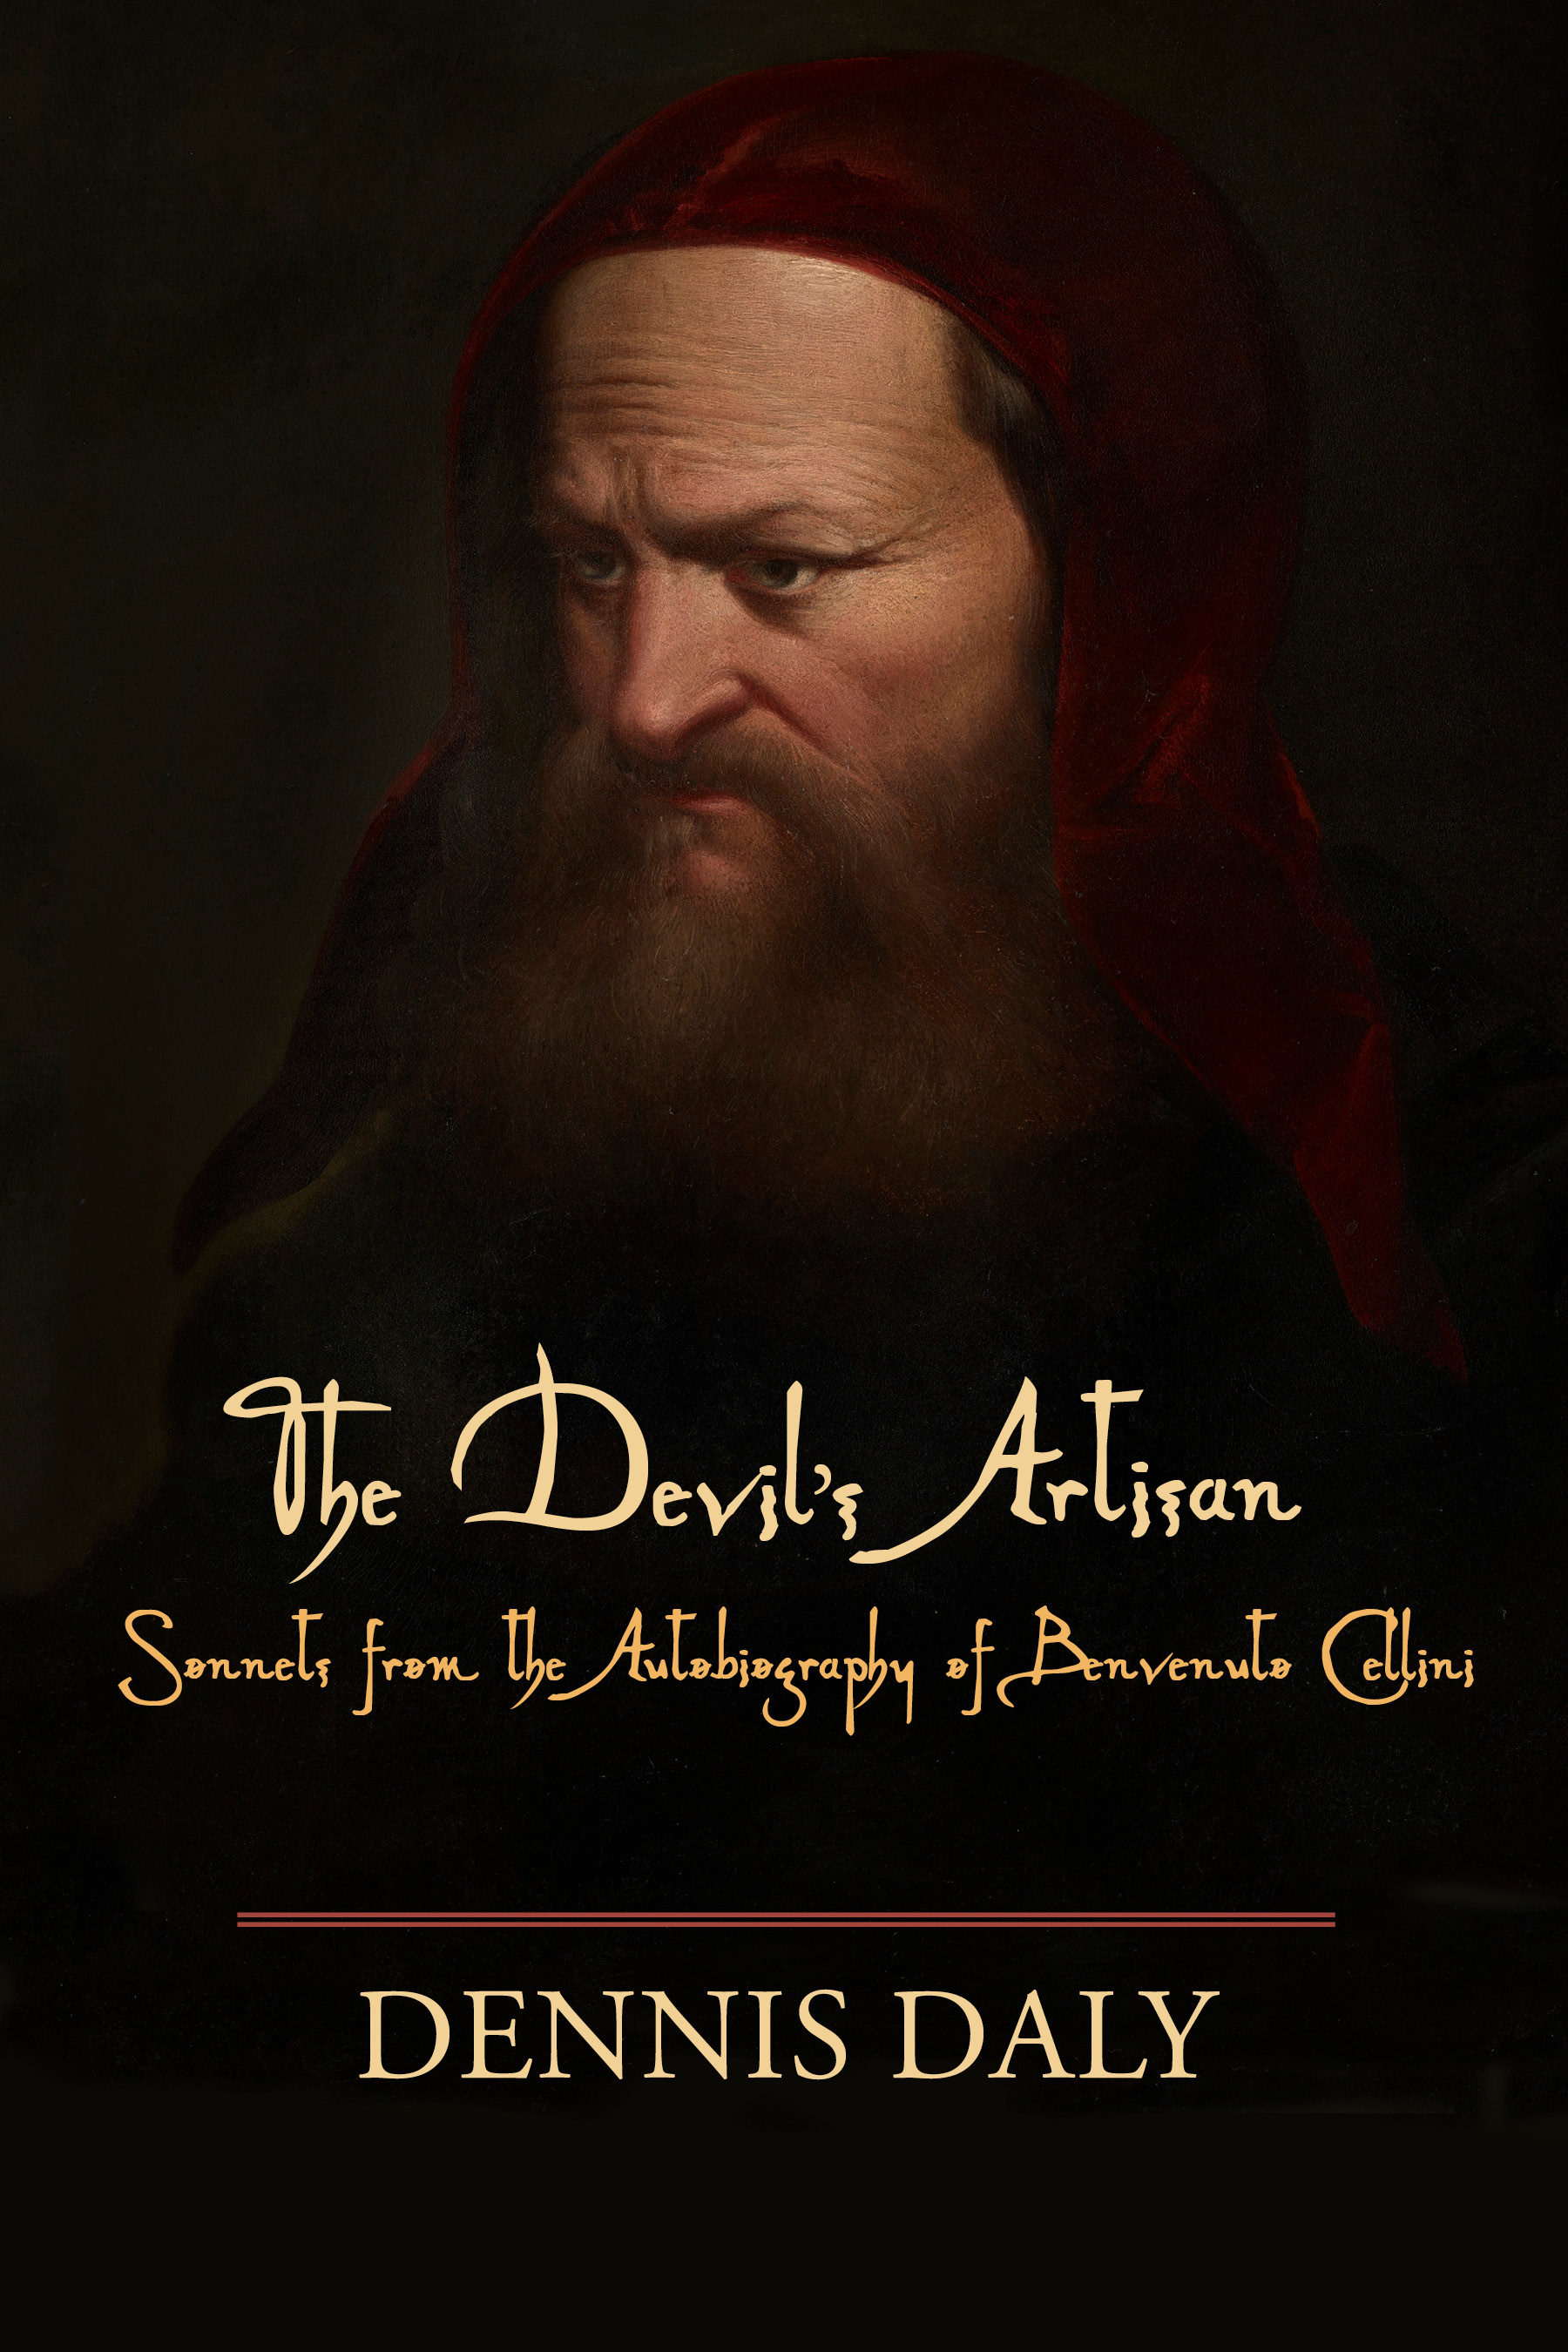 The Devil's Artisan: Sonnets from the Autobiography of Benvenuto Cellini